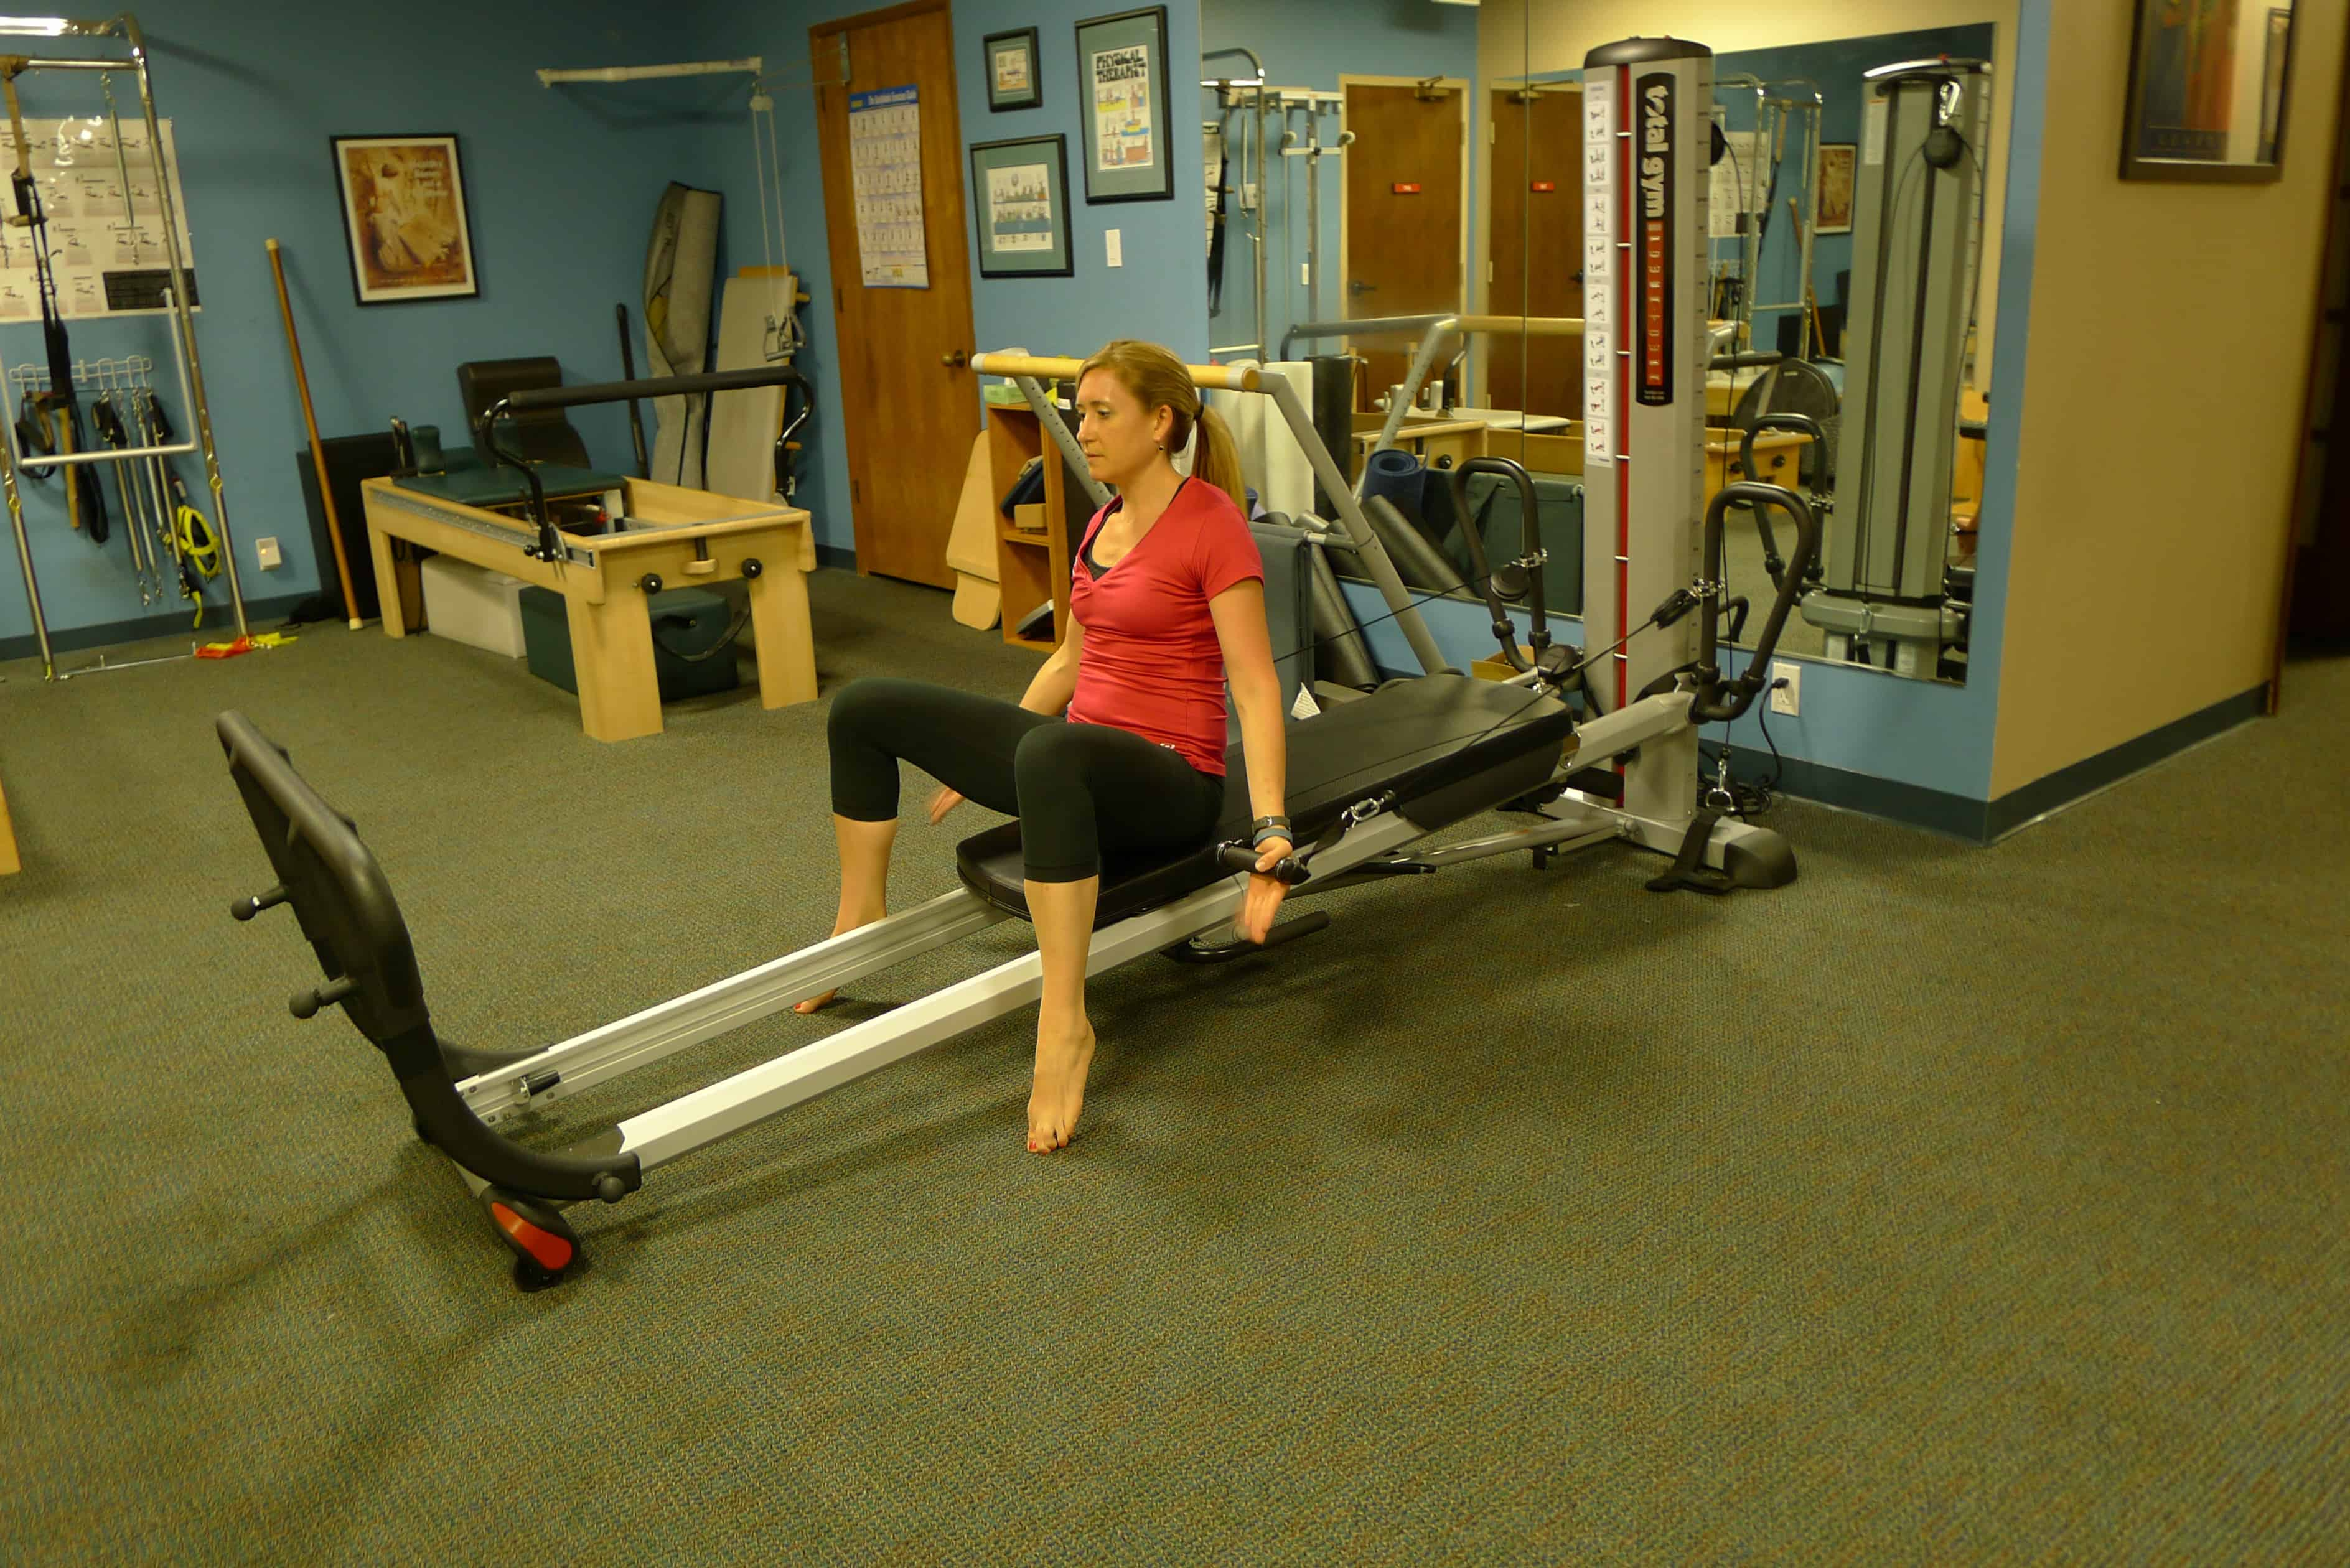 Best pilates exercises on total gym